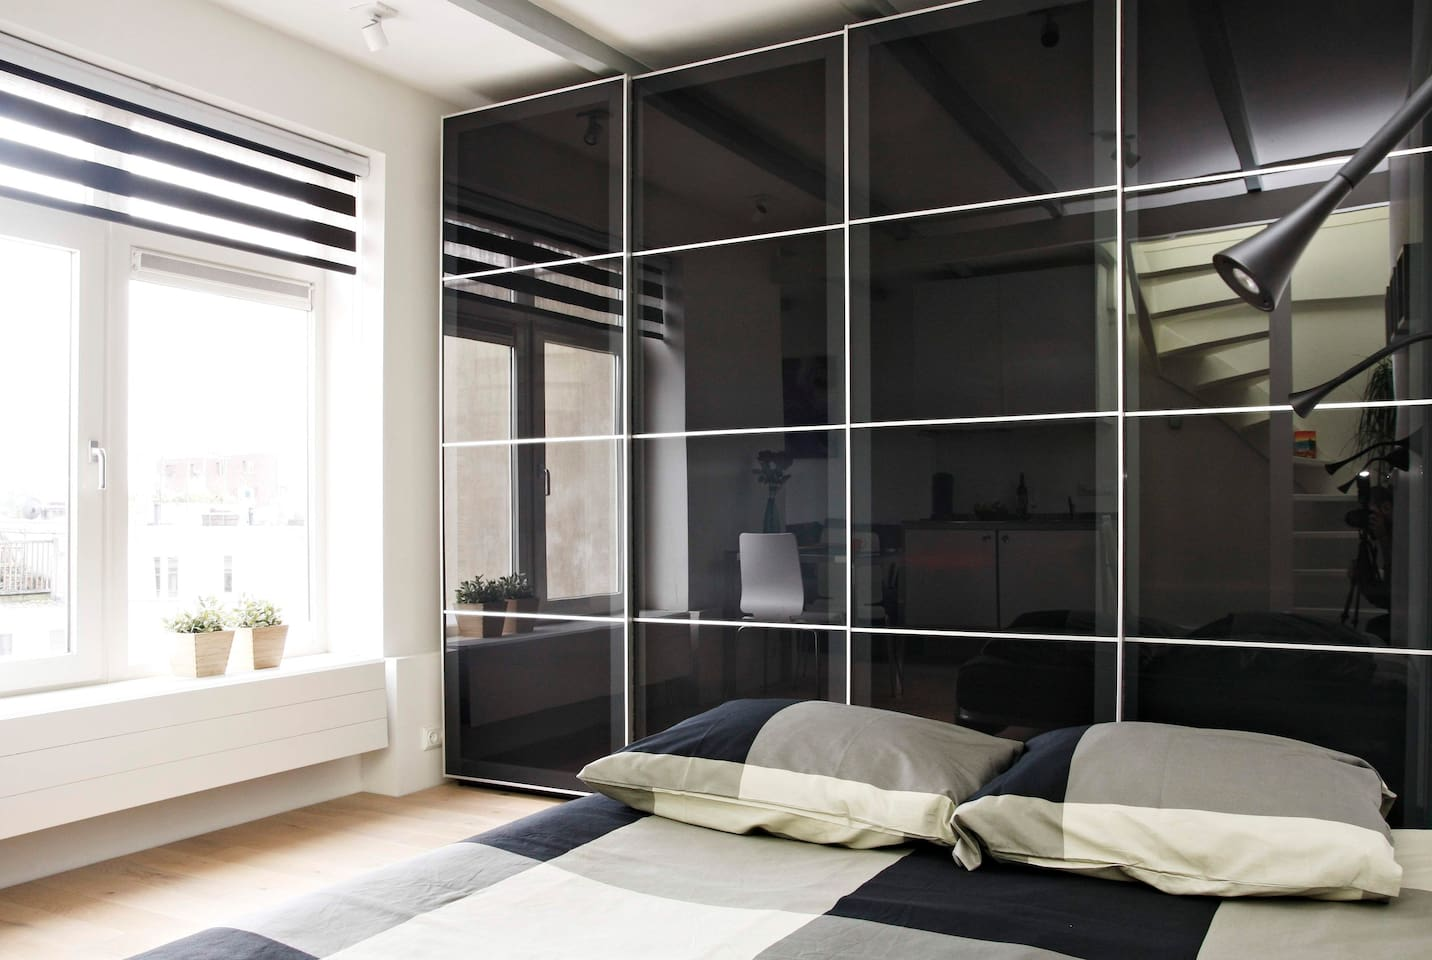 Double bed with view over the city